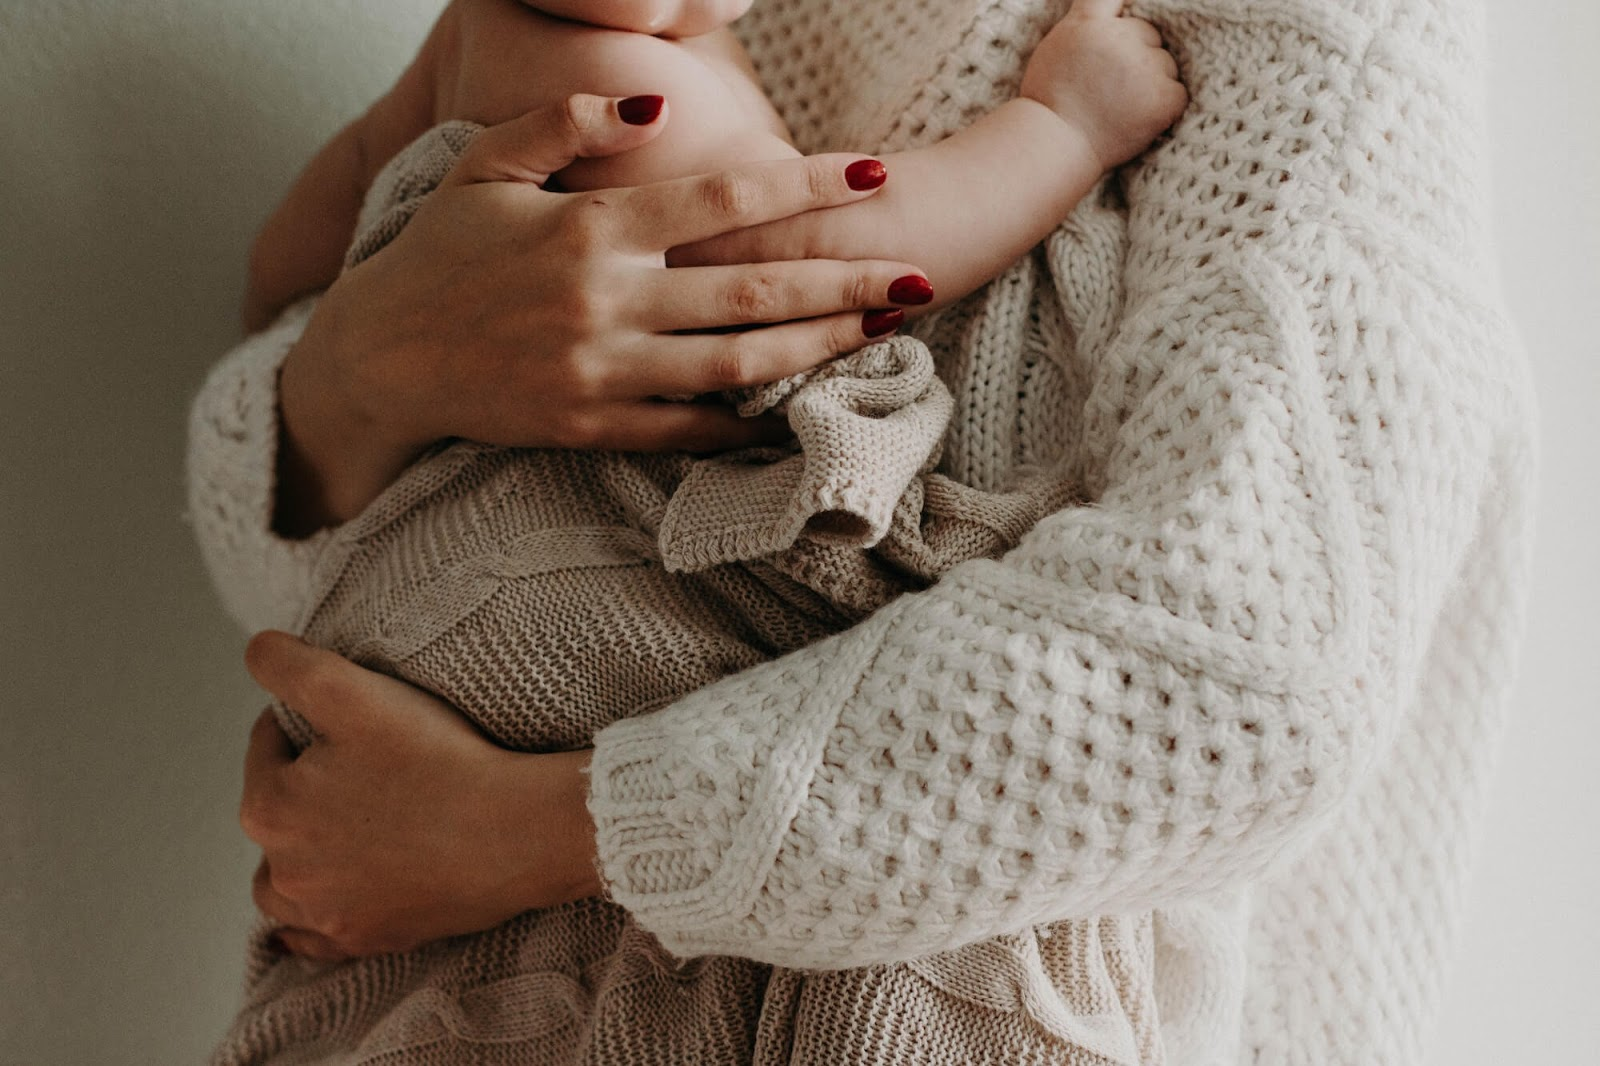 A mother holds her baby to her torso. She is in a white sweater and the baby is in a beige blanket. Their faces are unseen